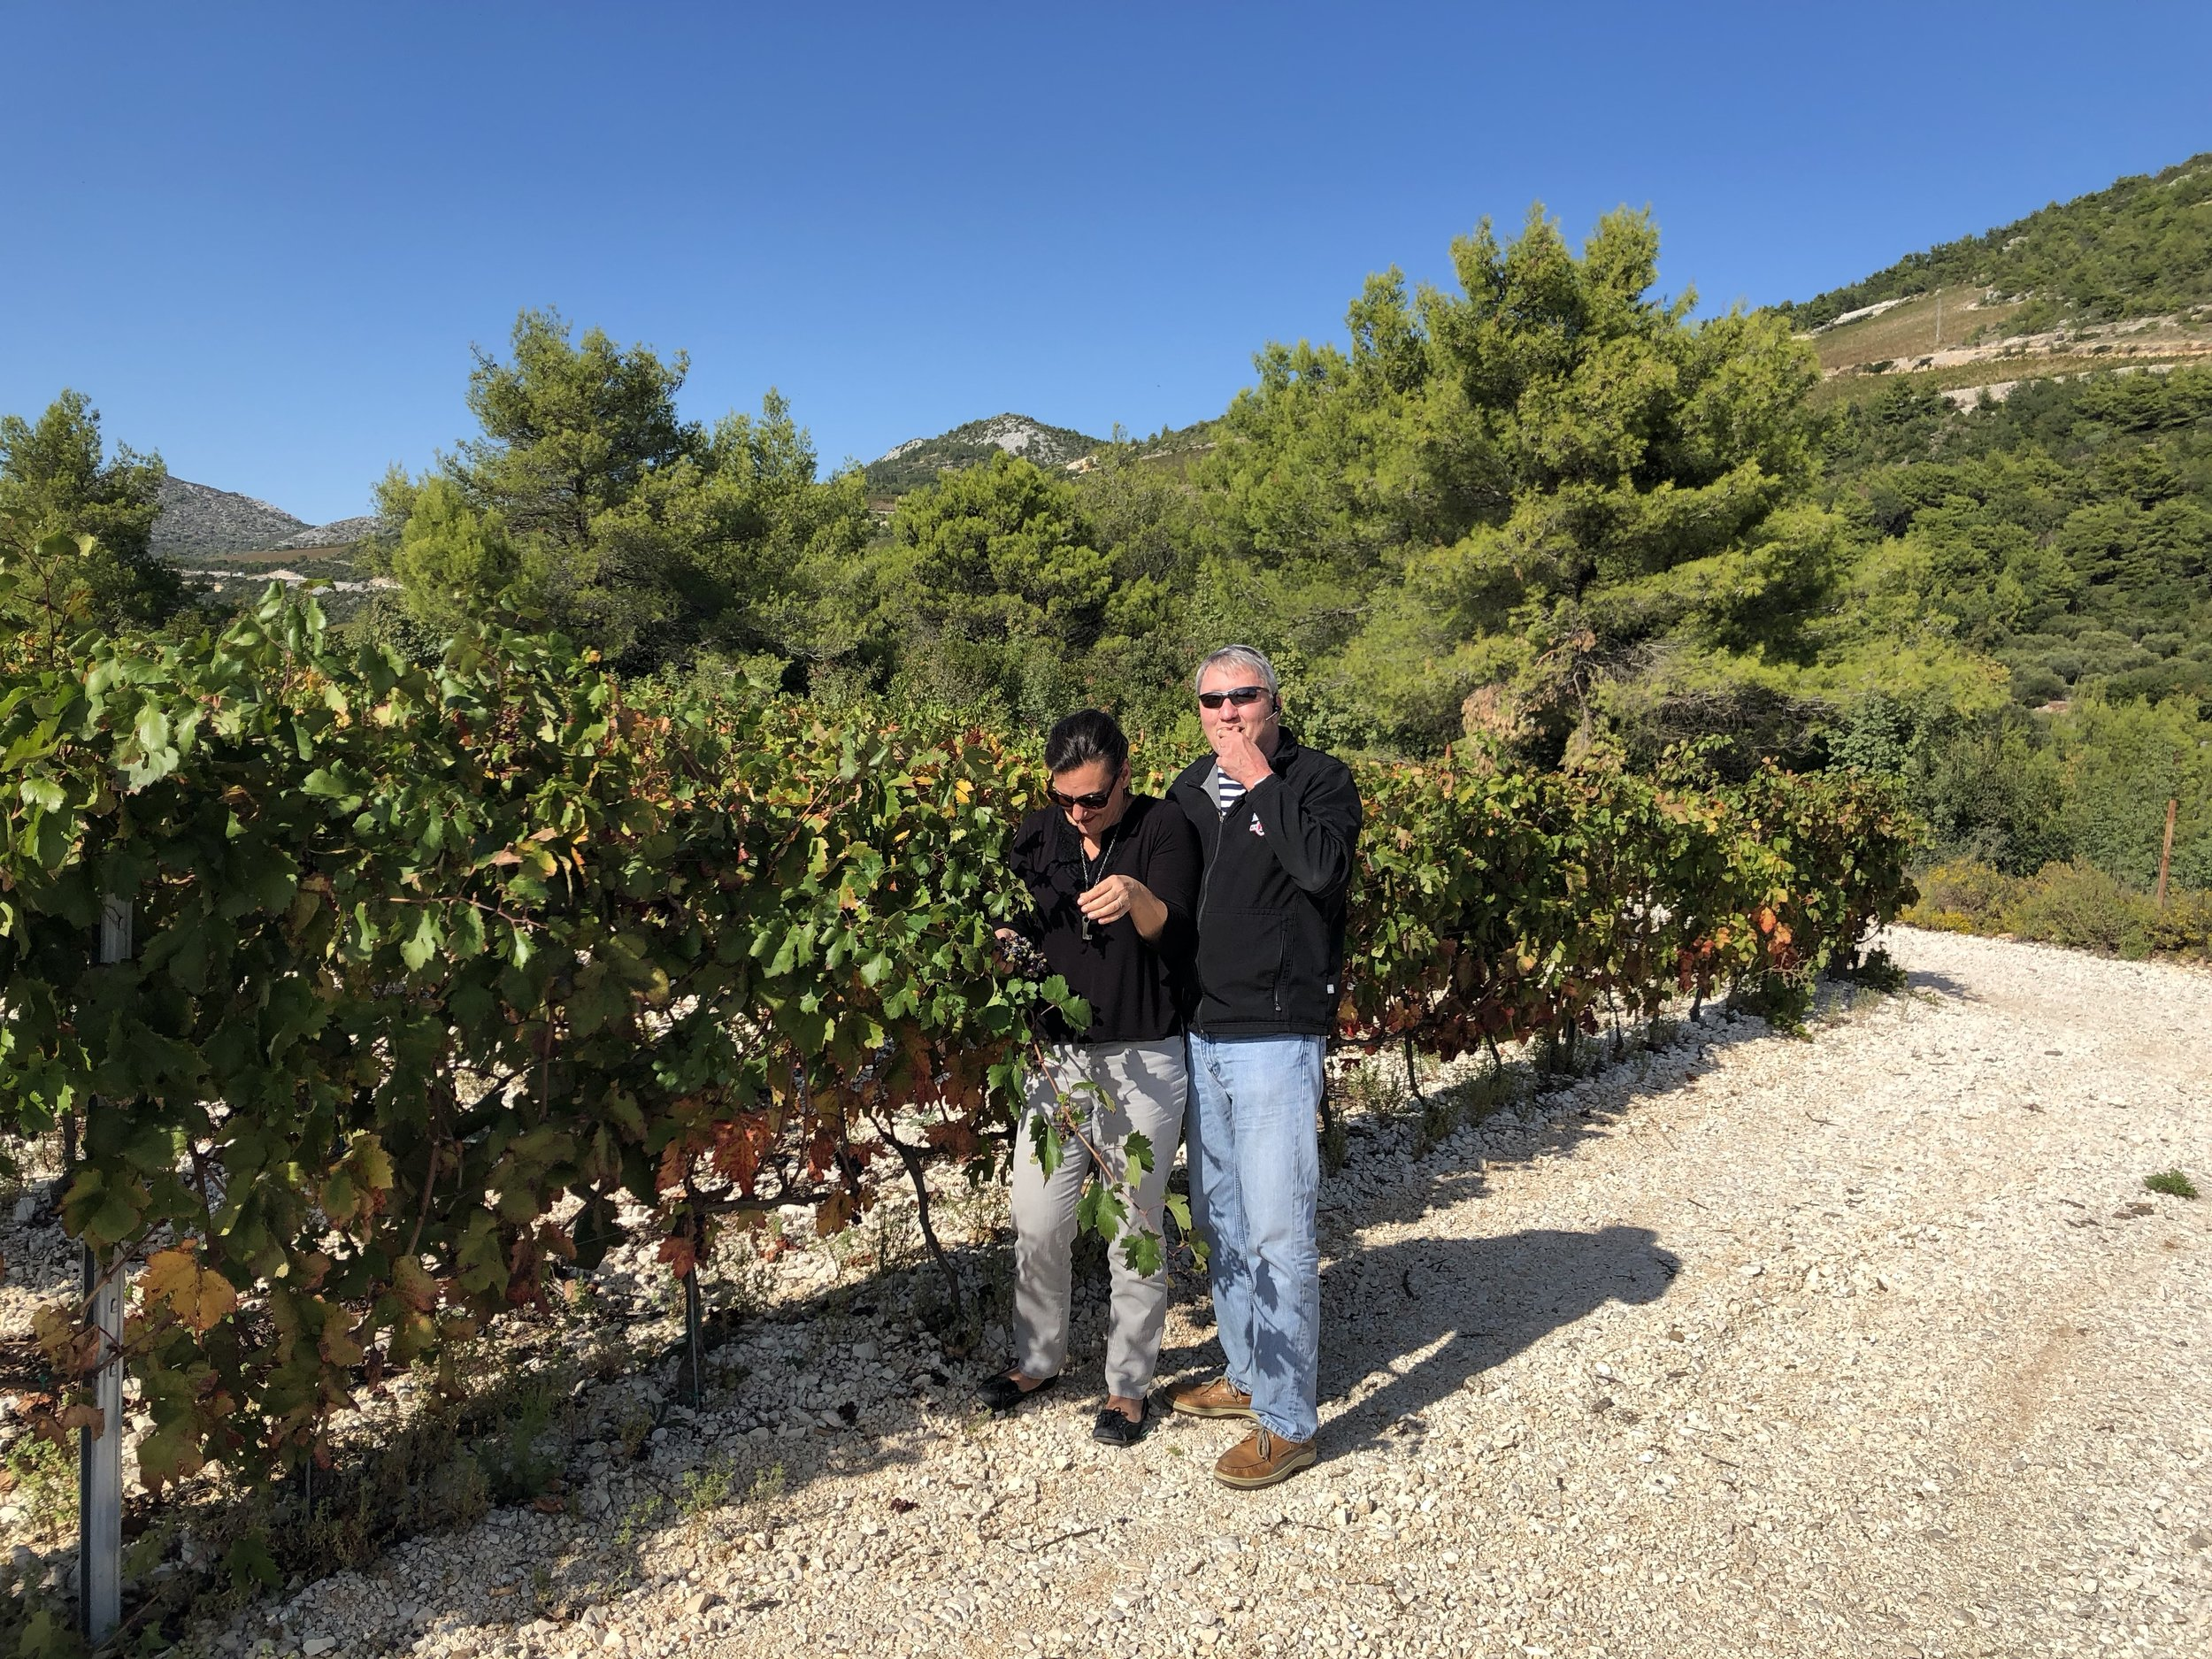 M and W in vineyard.jpg